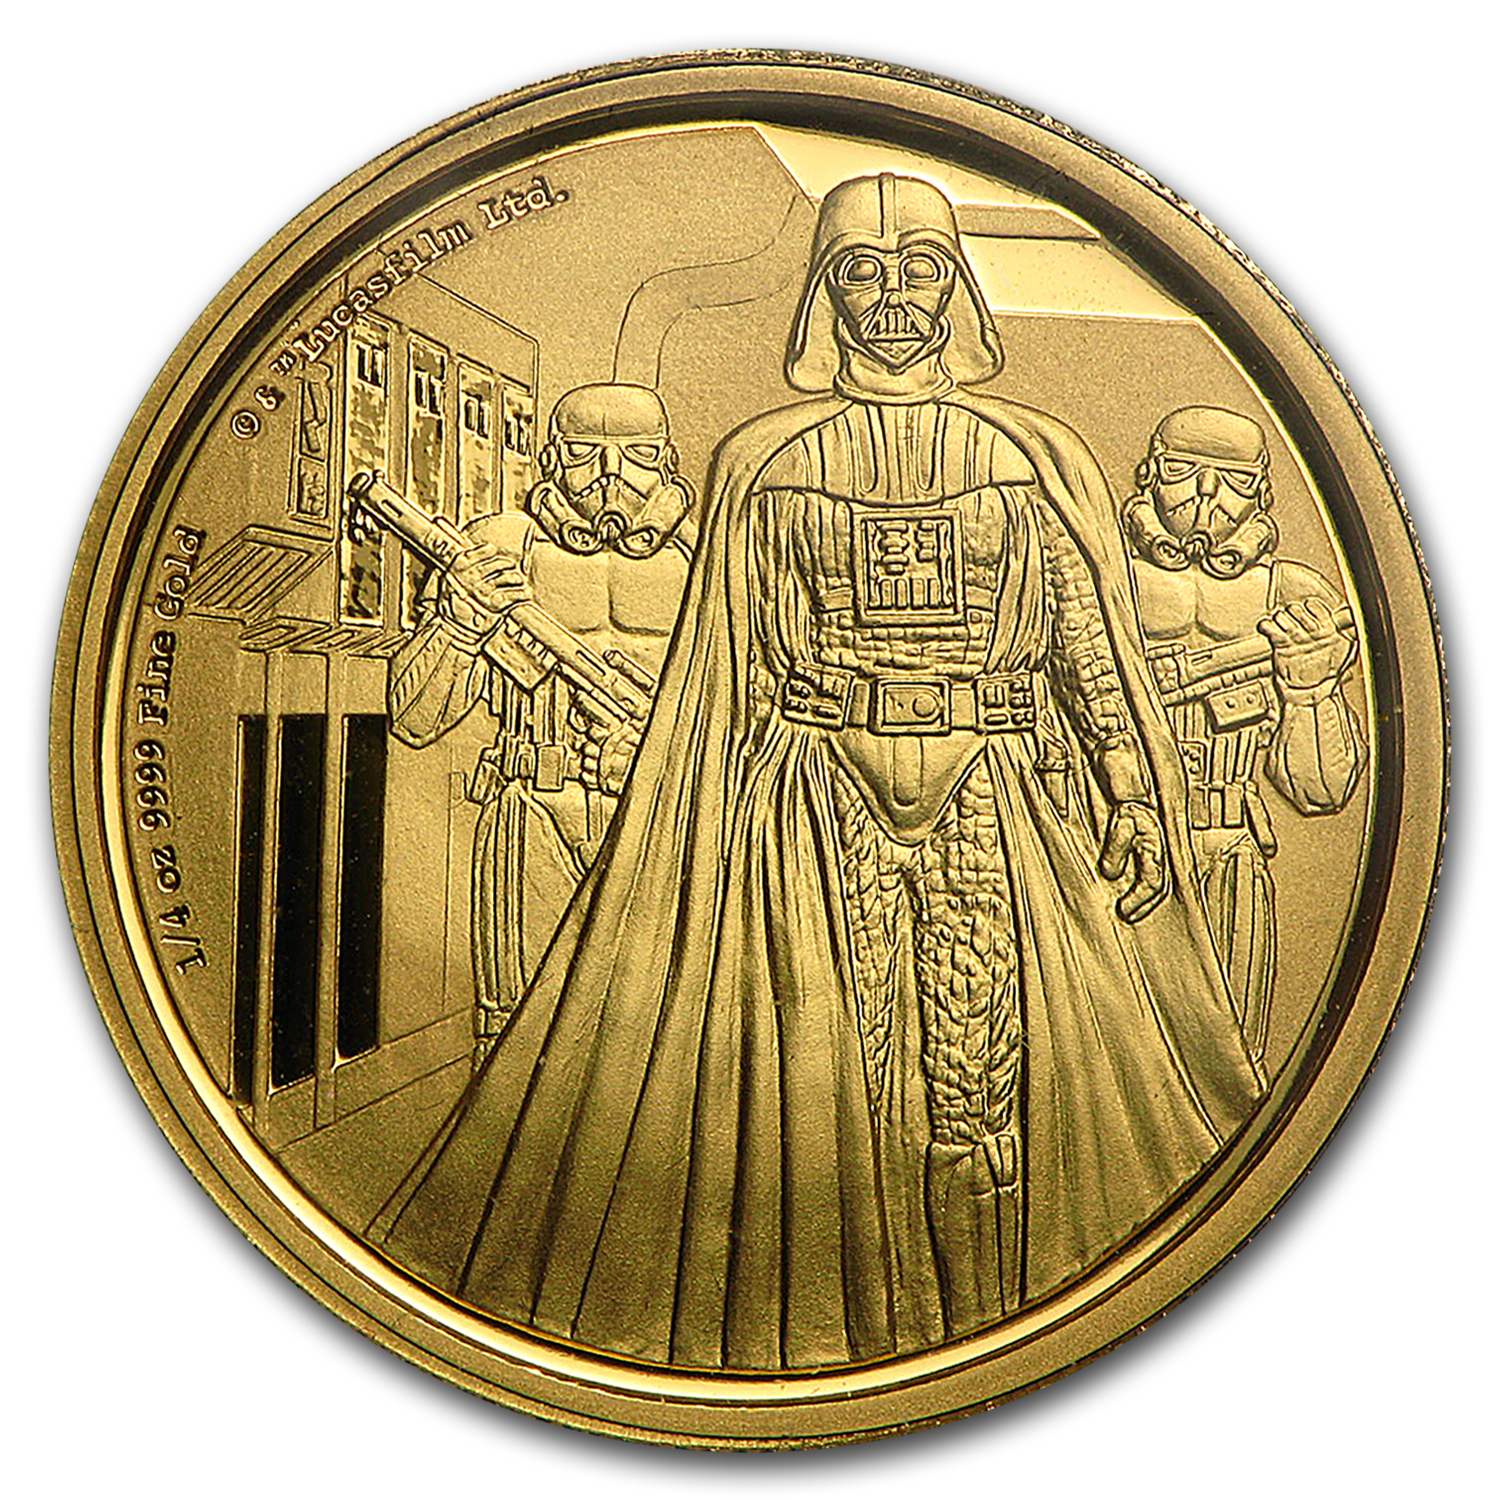 2015 Niue 1/4 oz Proof Gold $25 Star Wars Darth Vader